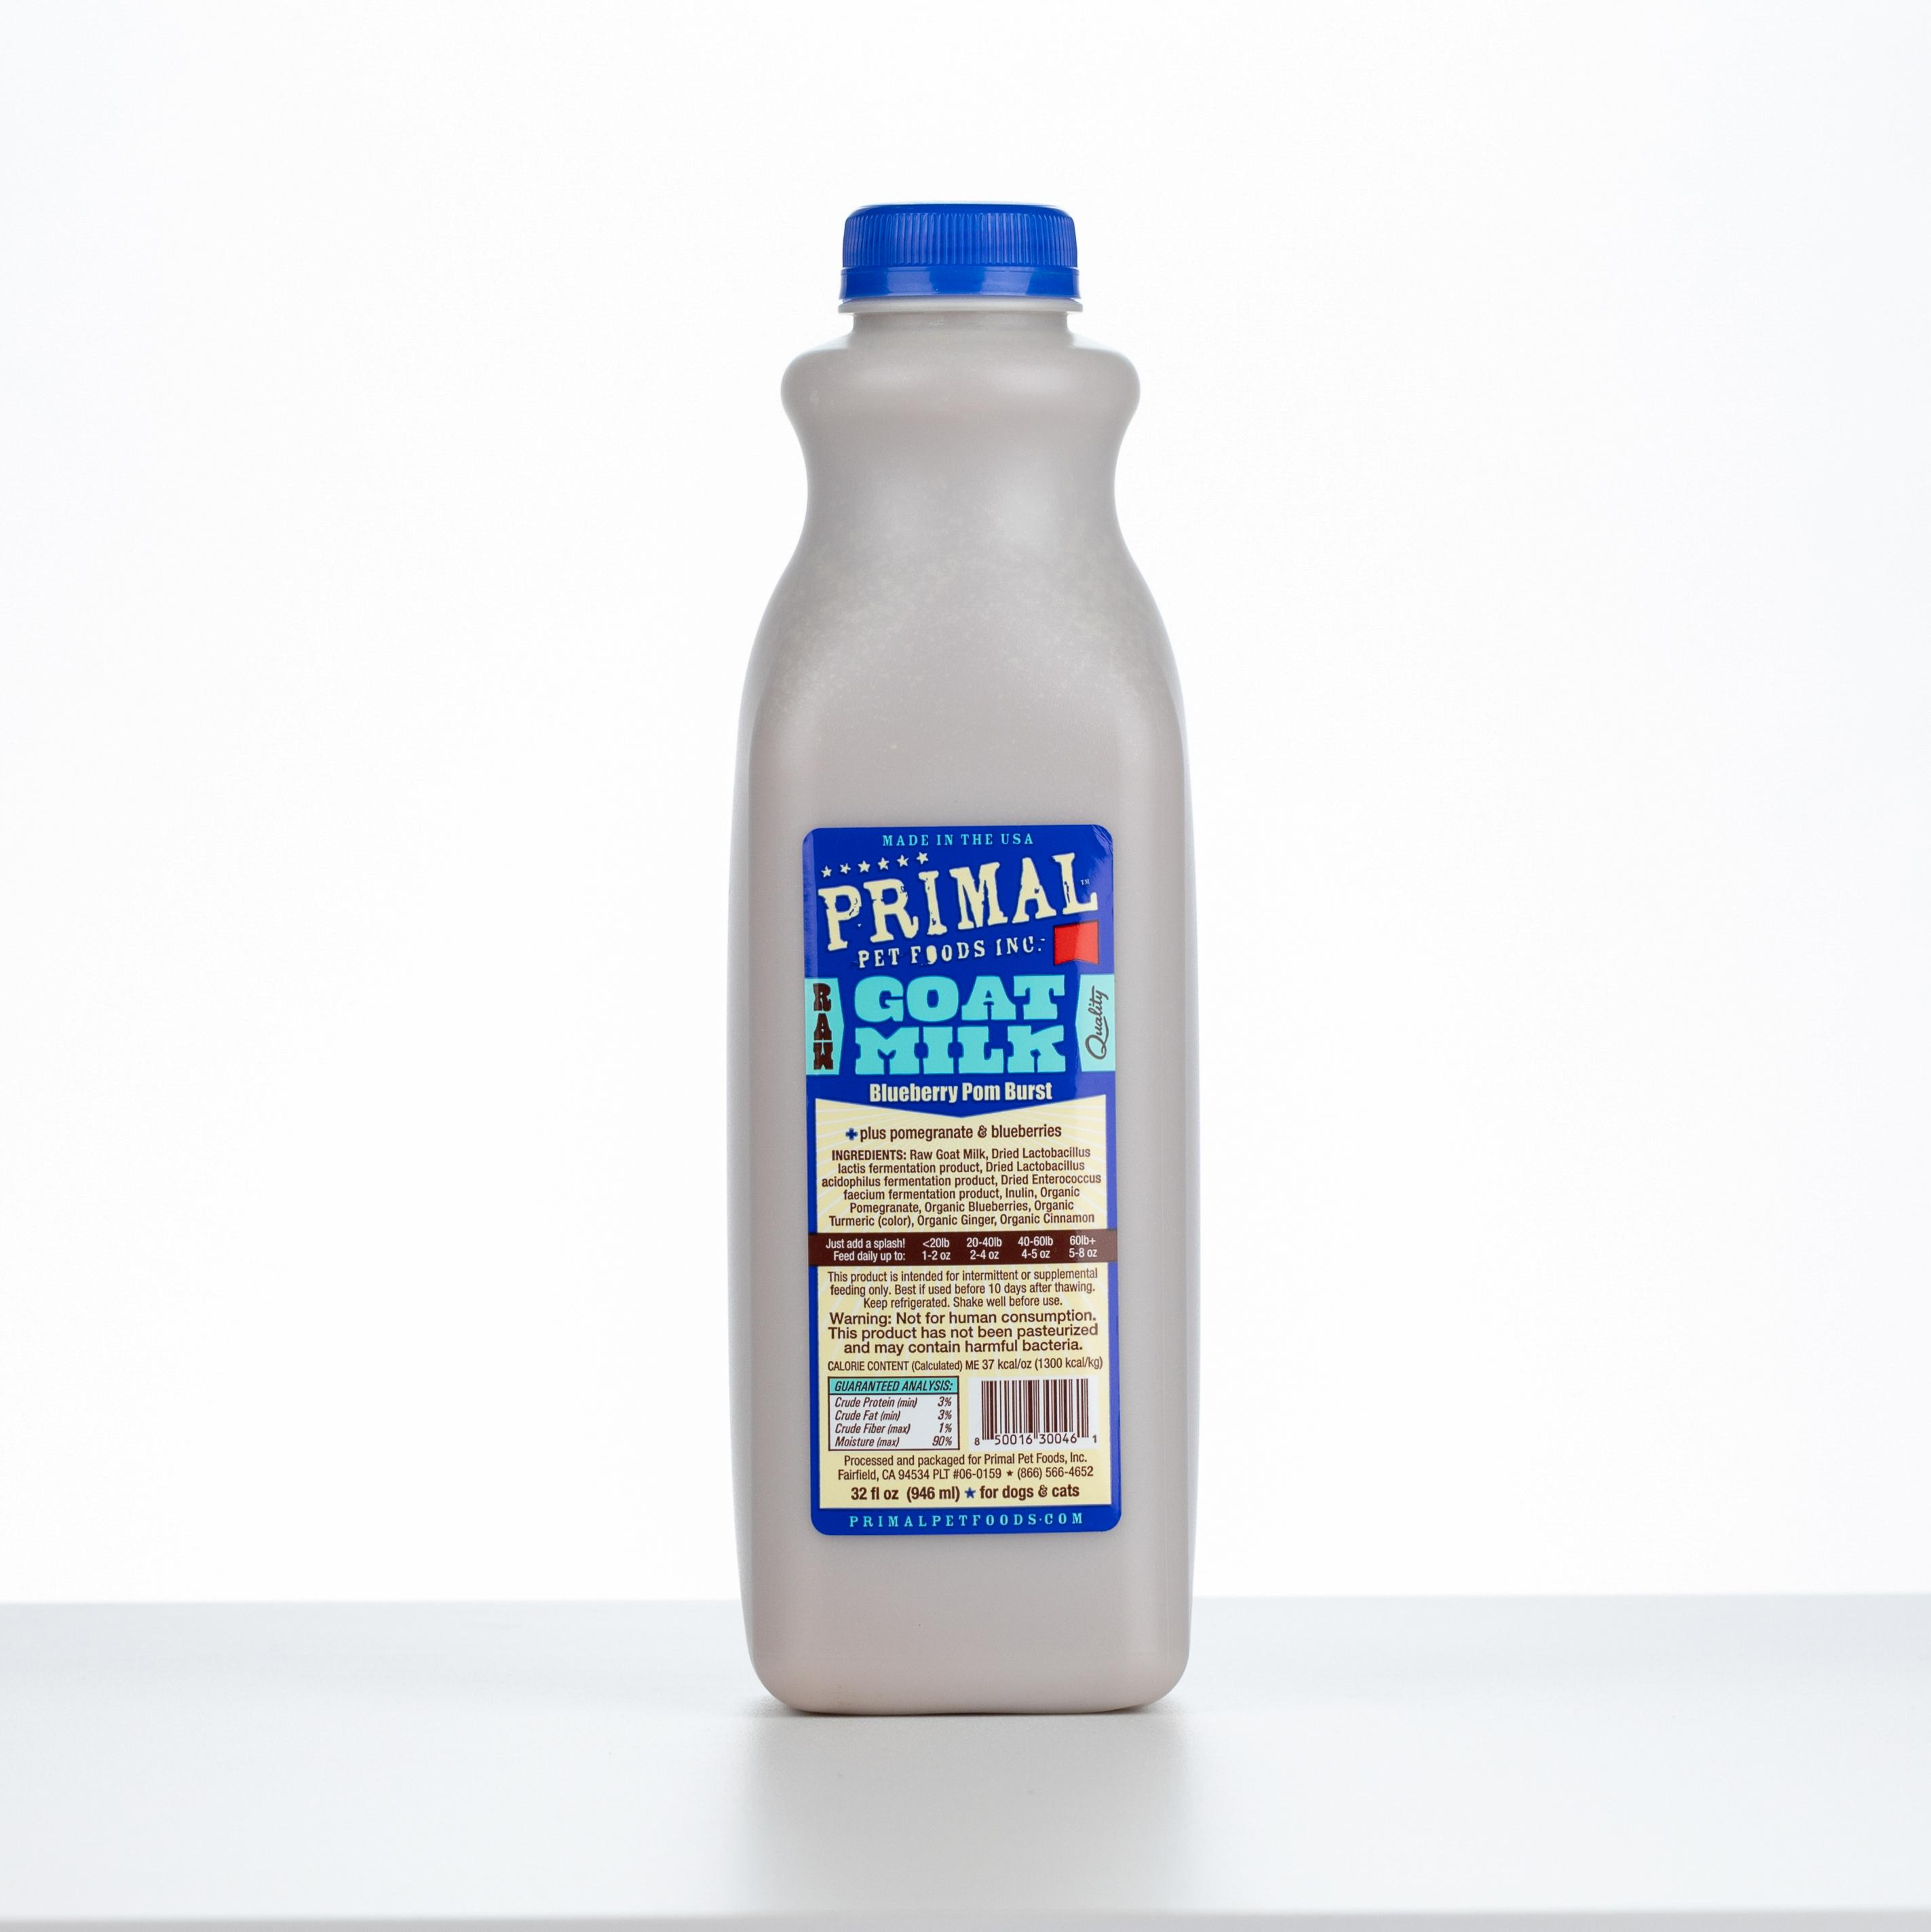 Primal Raw Frozen Goat Milk 'Blueberry Pom Burst' for Dogs & Cats, 32-oz